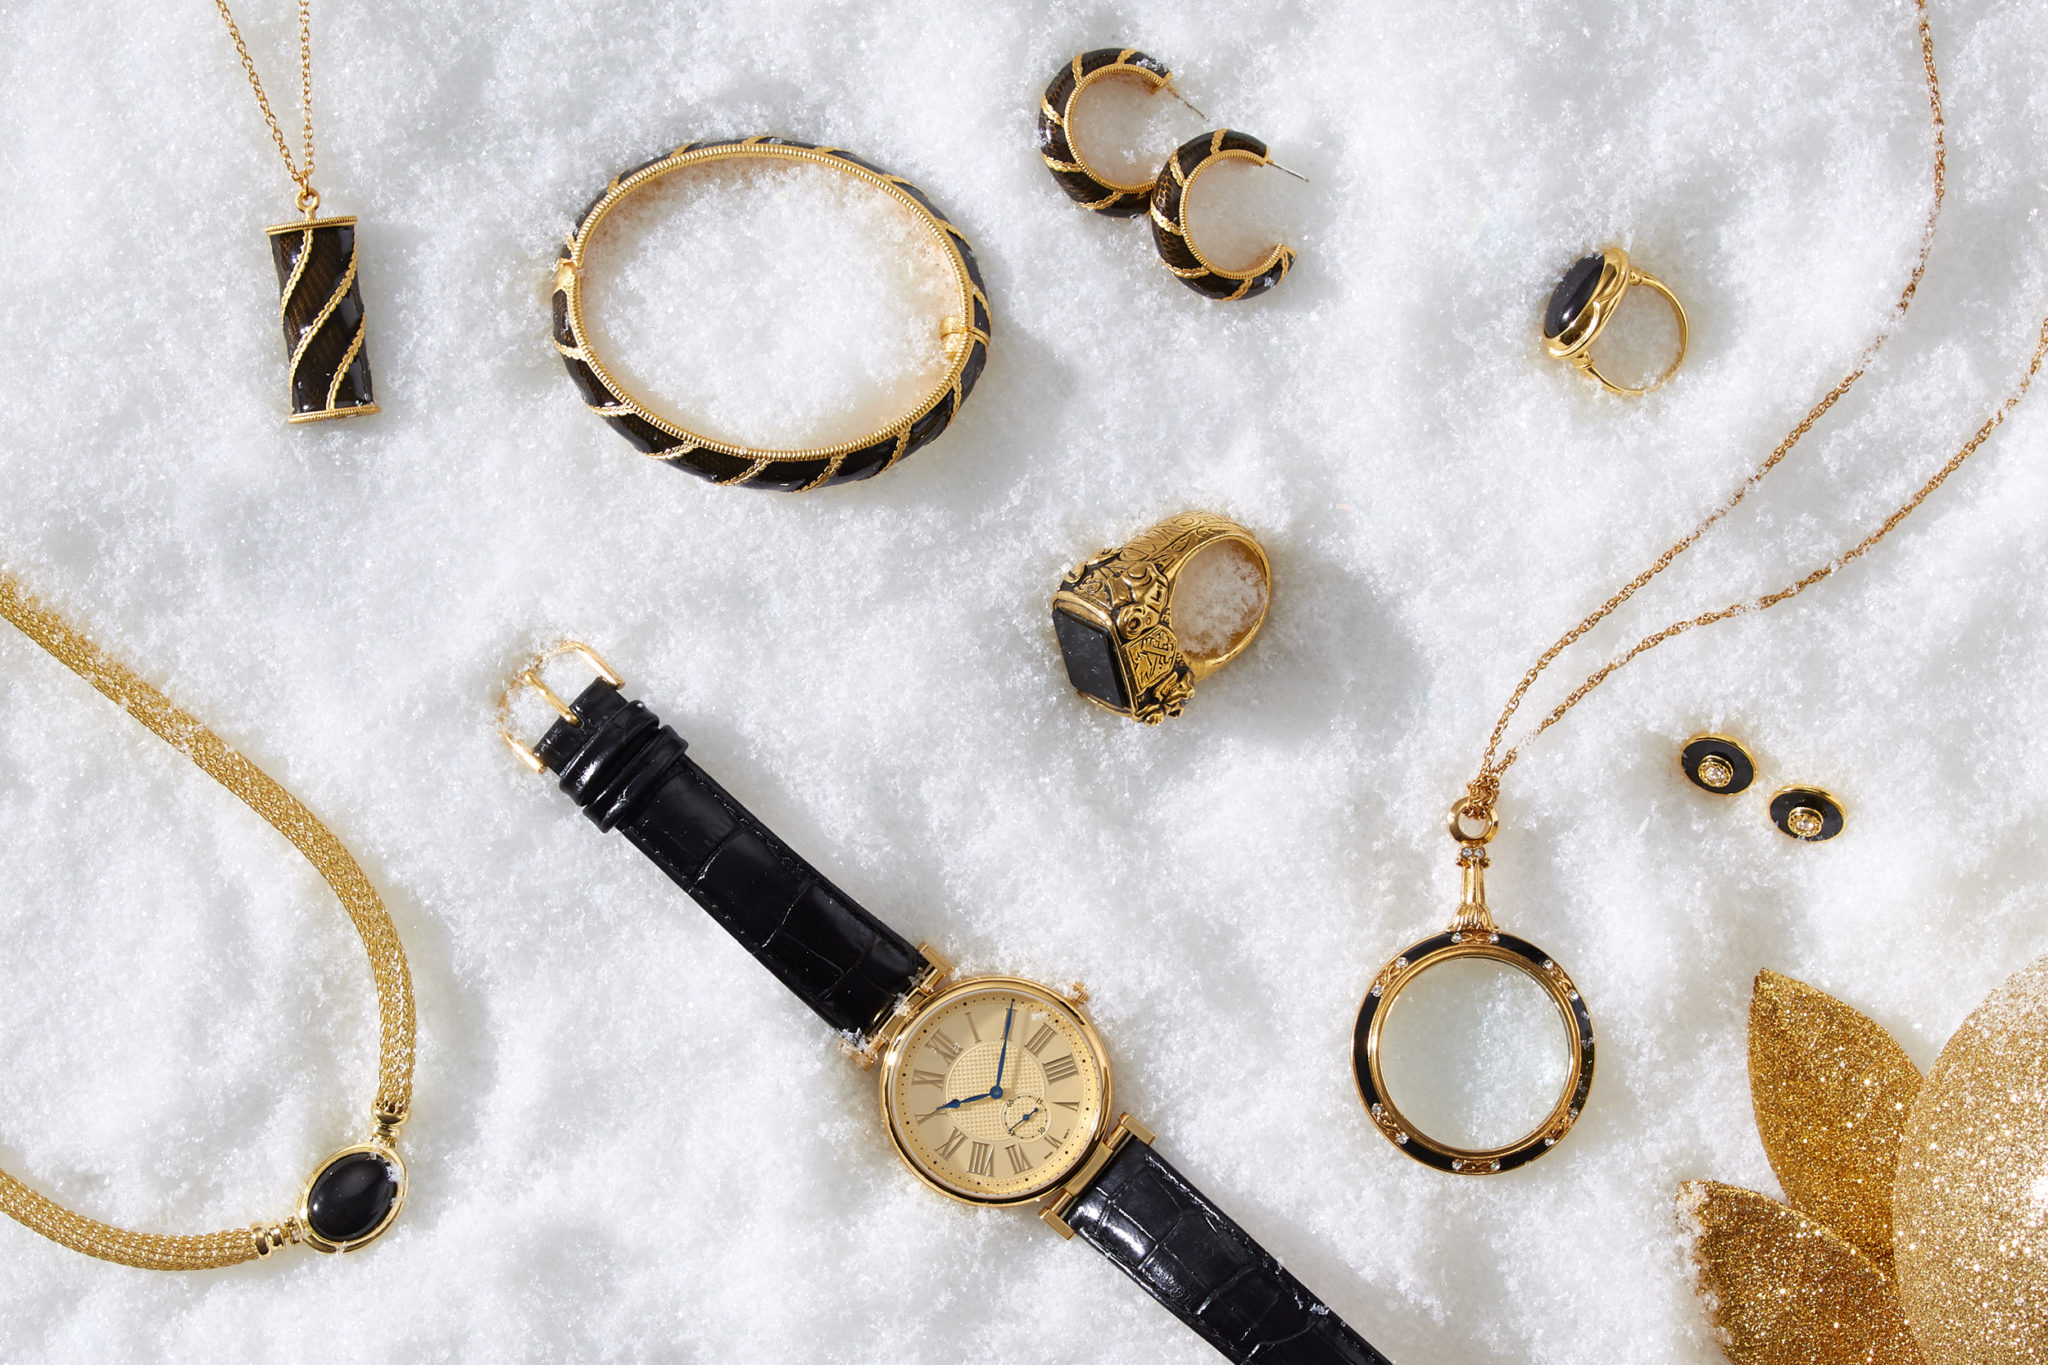 marketing still life photograph of black, gold and onyx jewelry including necklaces, earrings, rings, a bracelet, and a watch on snow